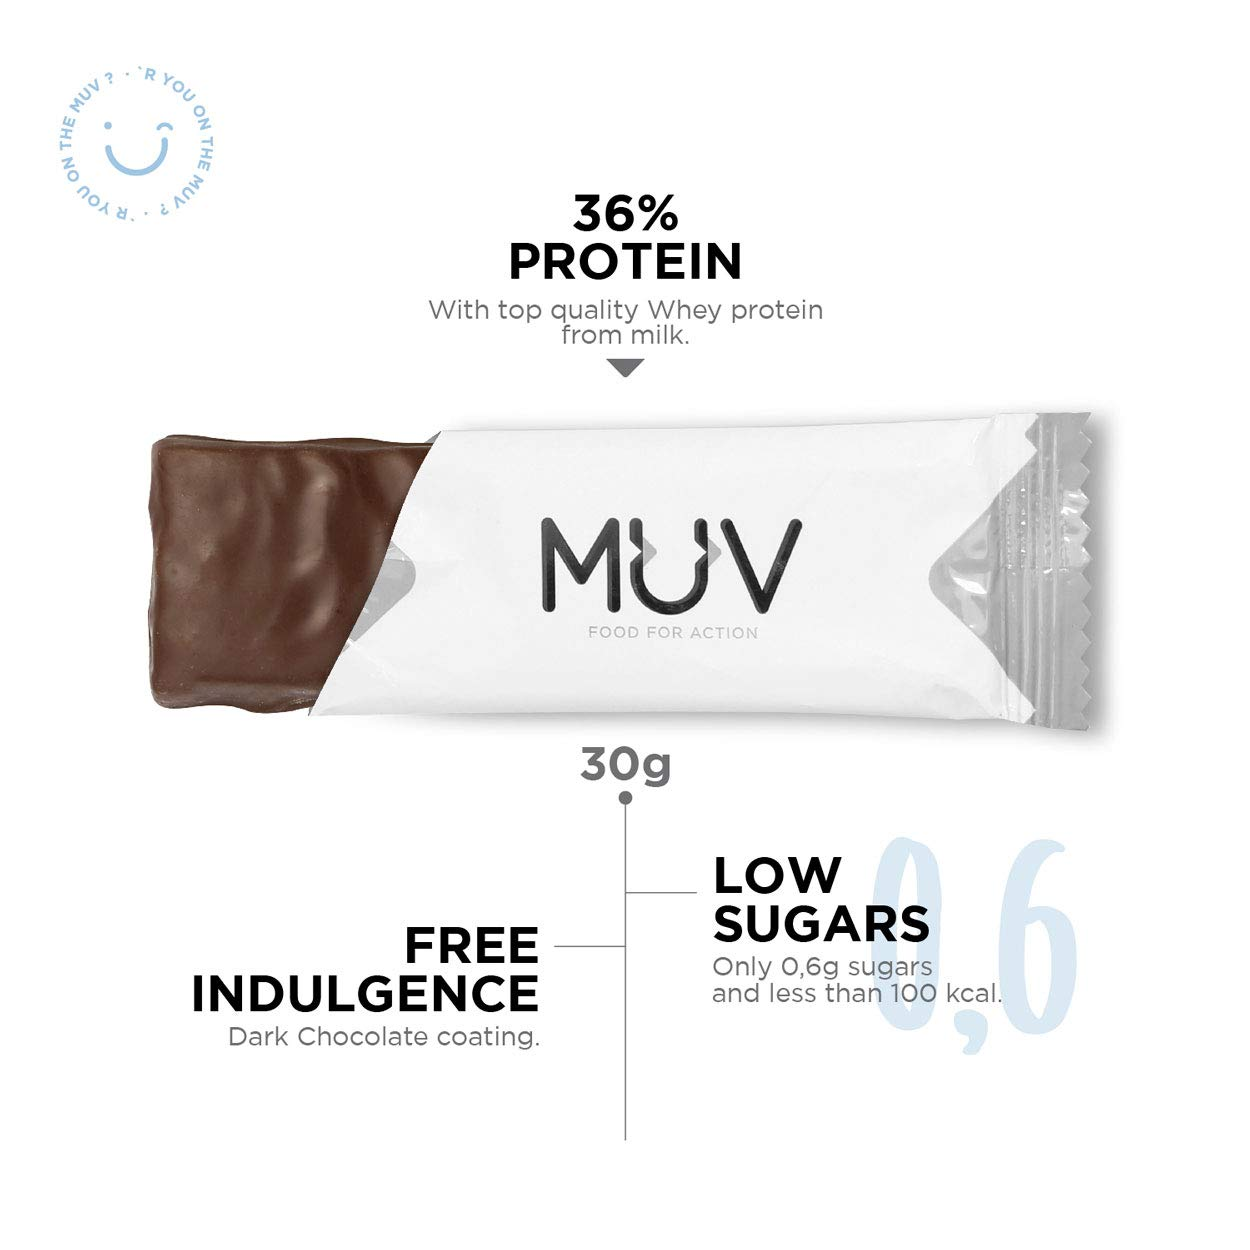 Muv Food For Action - Barras de proteína bajas en azúcar con chocolate y caramelo, 12 unidades de 30 g